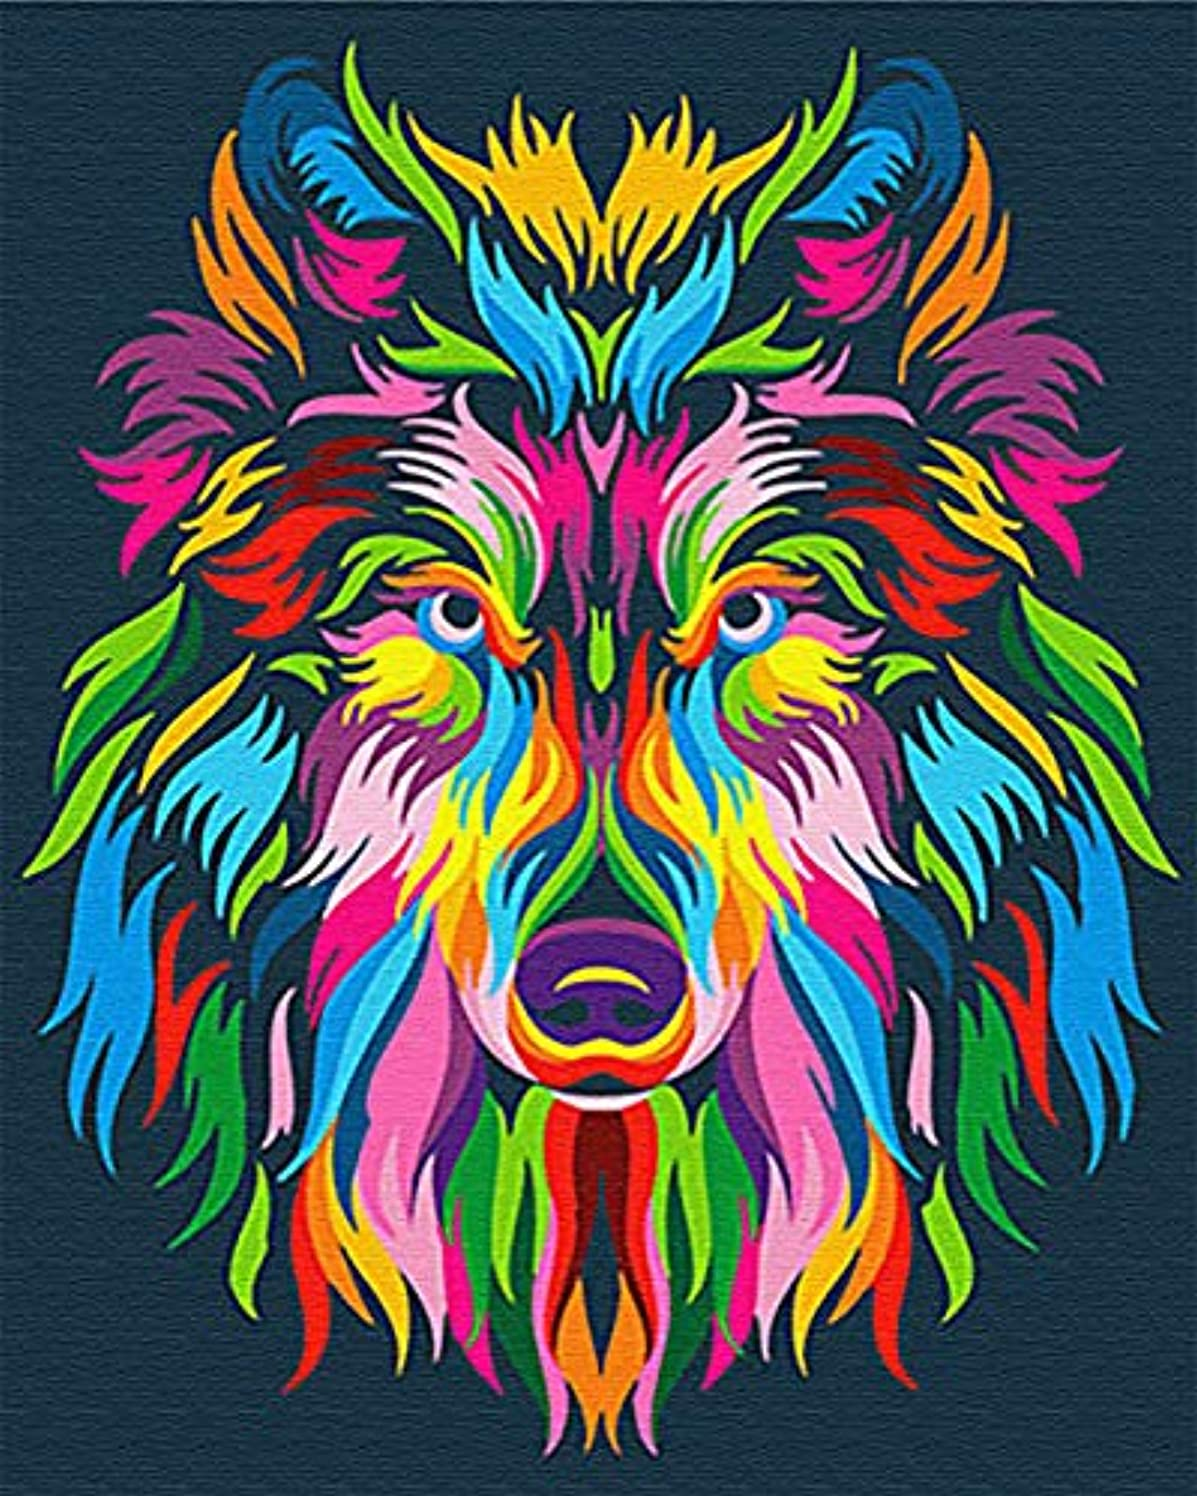 Komking DIY Oil Painting Paint by Numbers Kit for Adults Kids Beginner, Colorful Animals Painting on Canvas 16x20inch - Colorful Wolf of Tribe